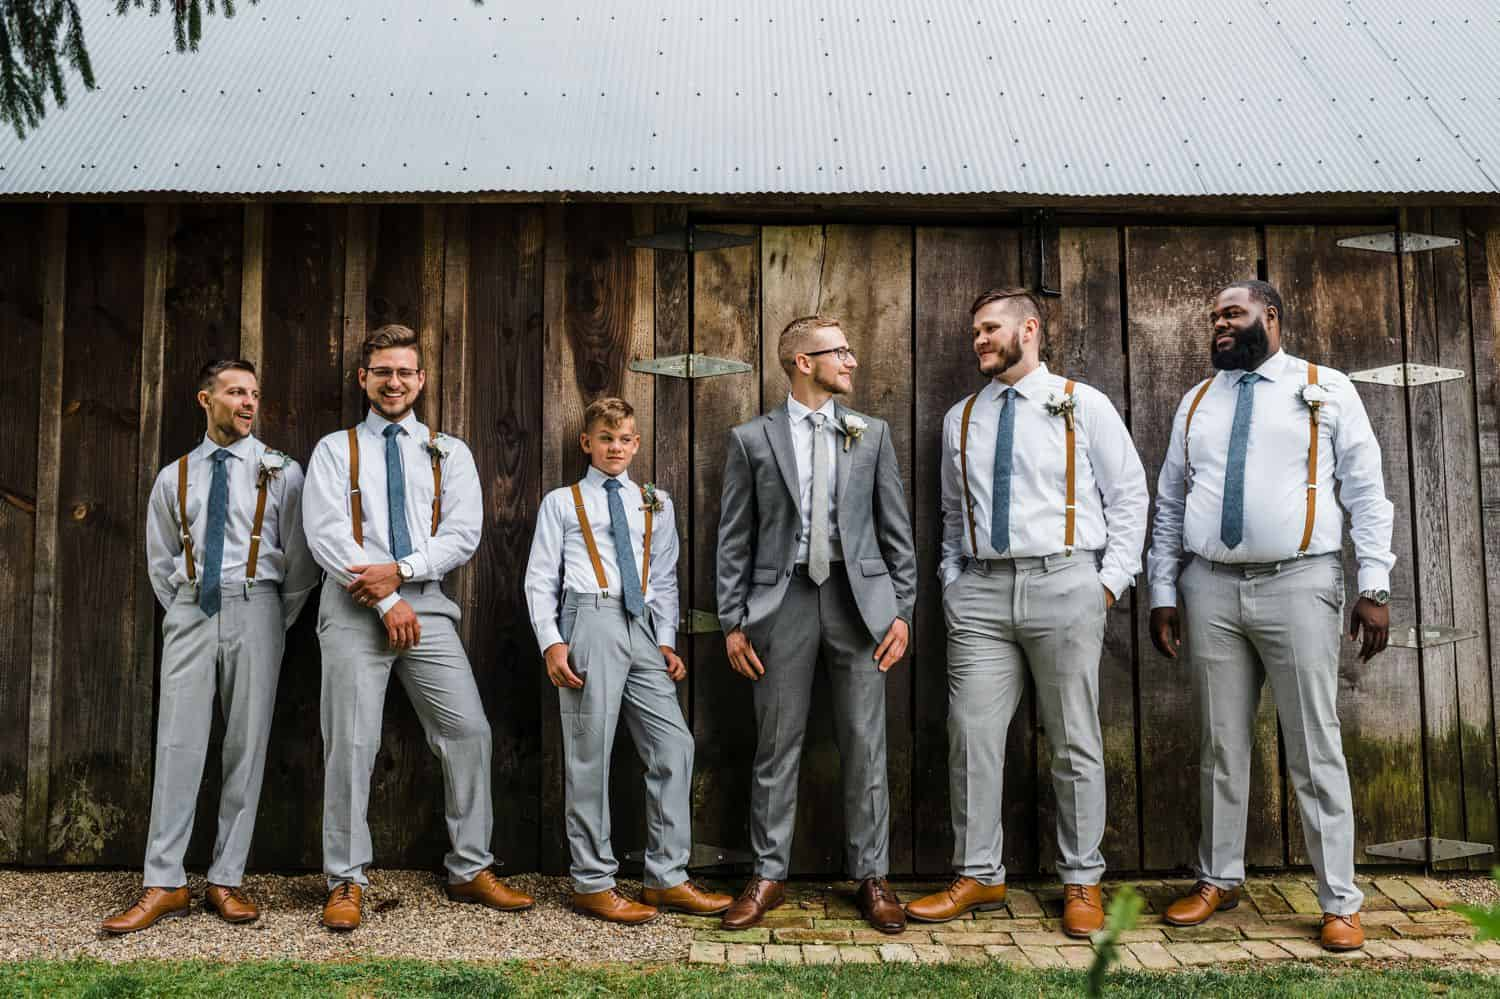 Groomsmen in shirts and suspenders stand casually in front of a barn wall.